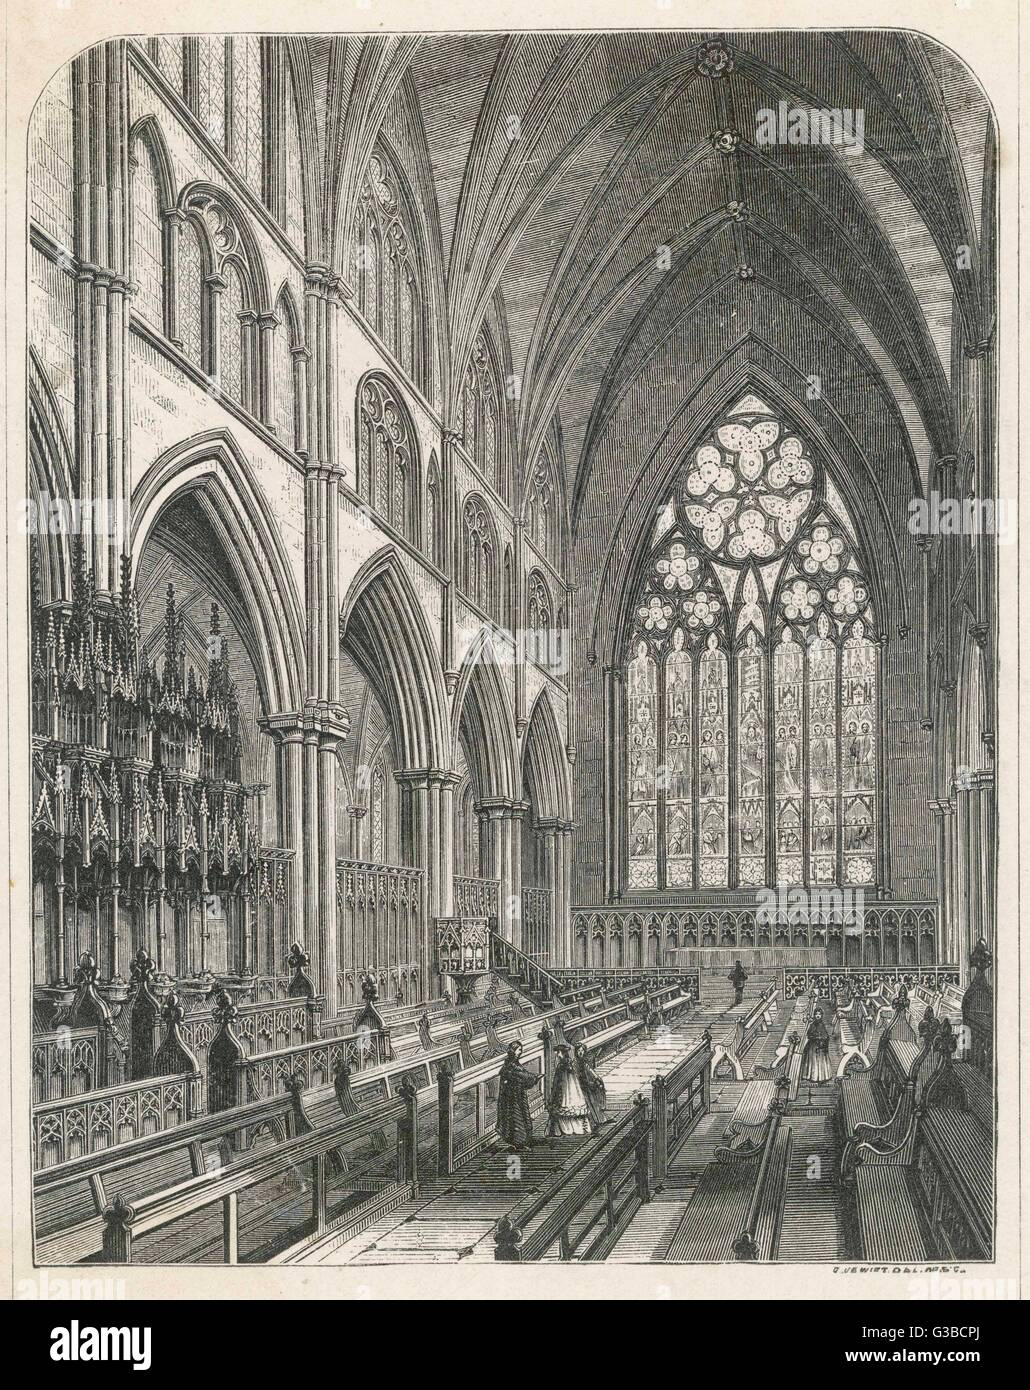 The Gothic choir stalls in  Ripon Cathedral         Date: 19th century - Stock Image